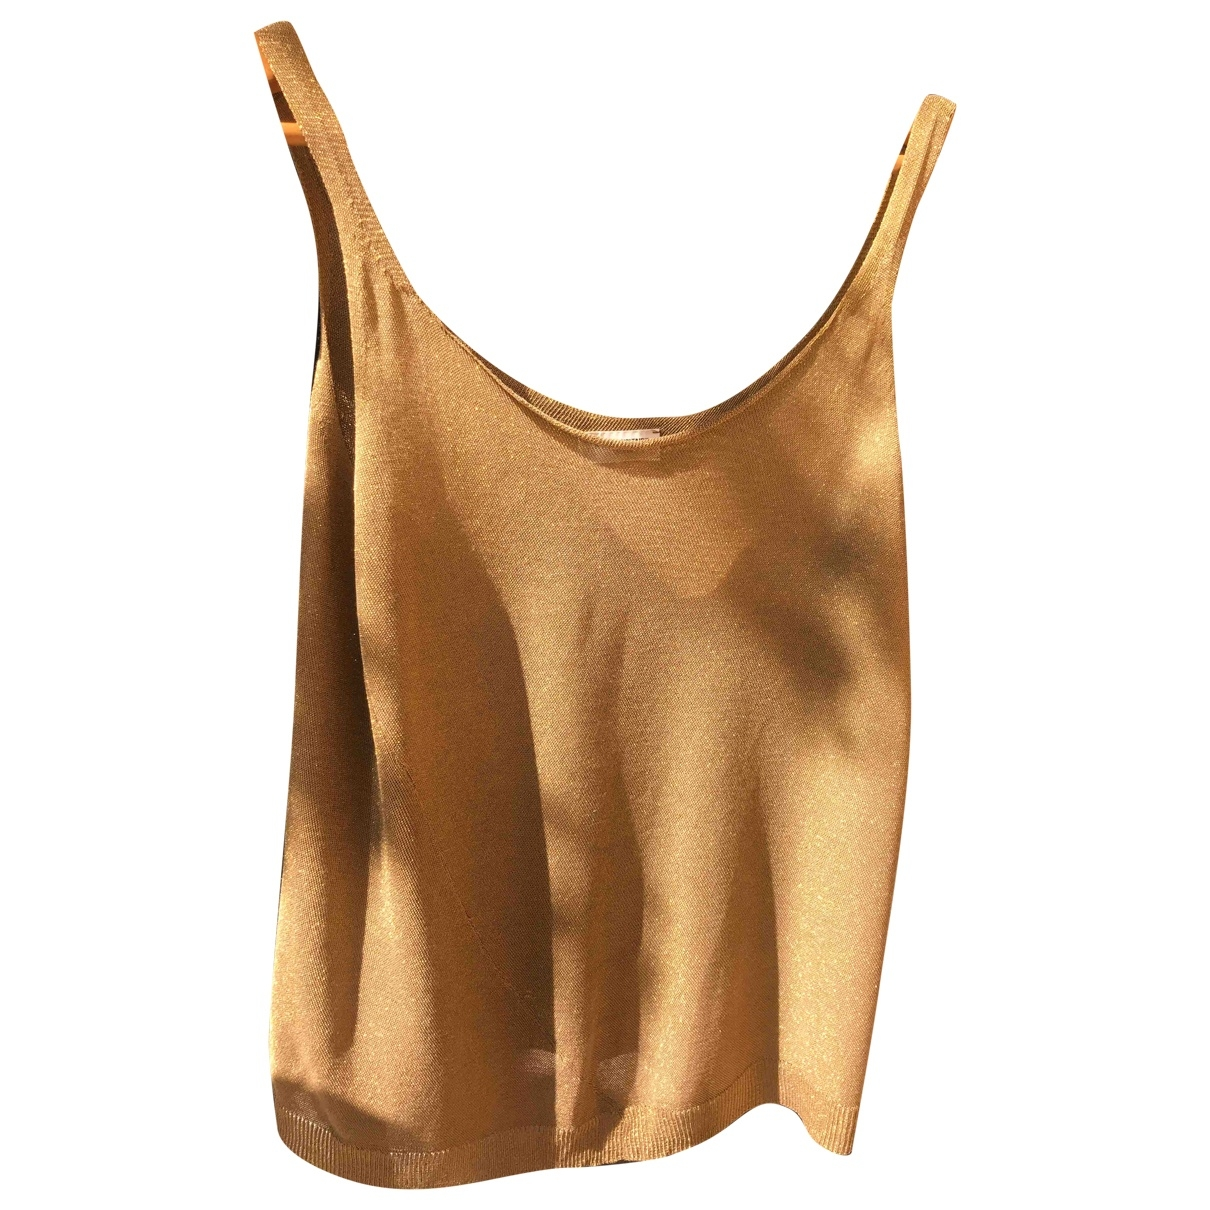 Zadig & Voltaire \N Gold  top for Women S International